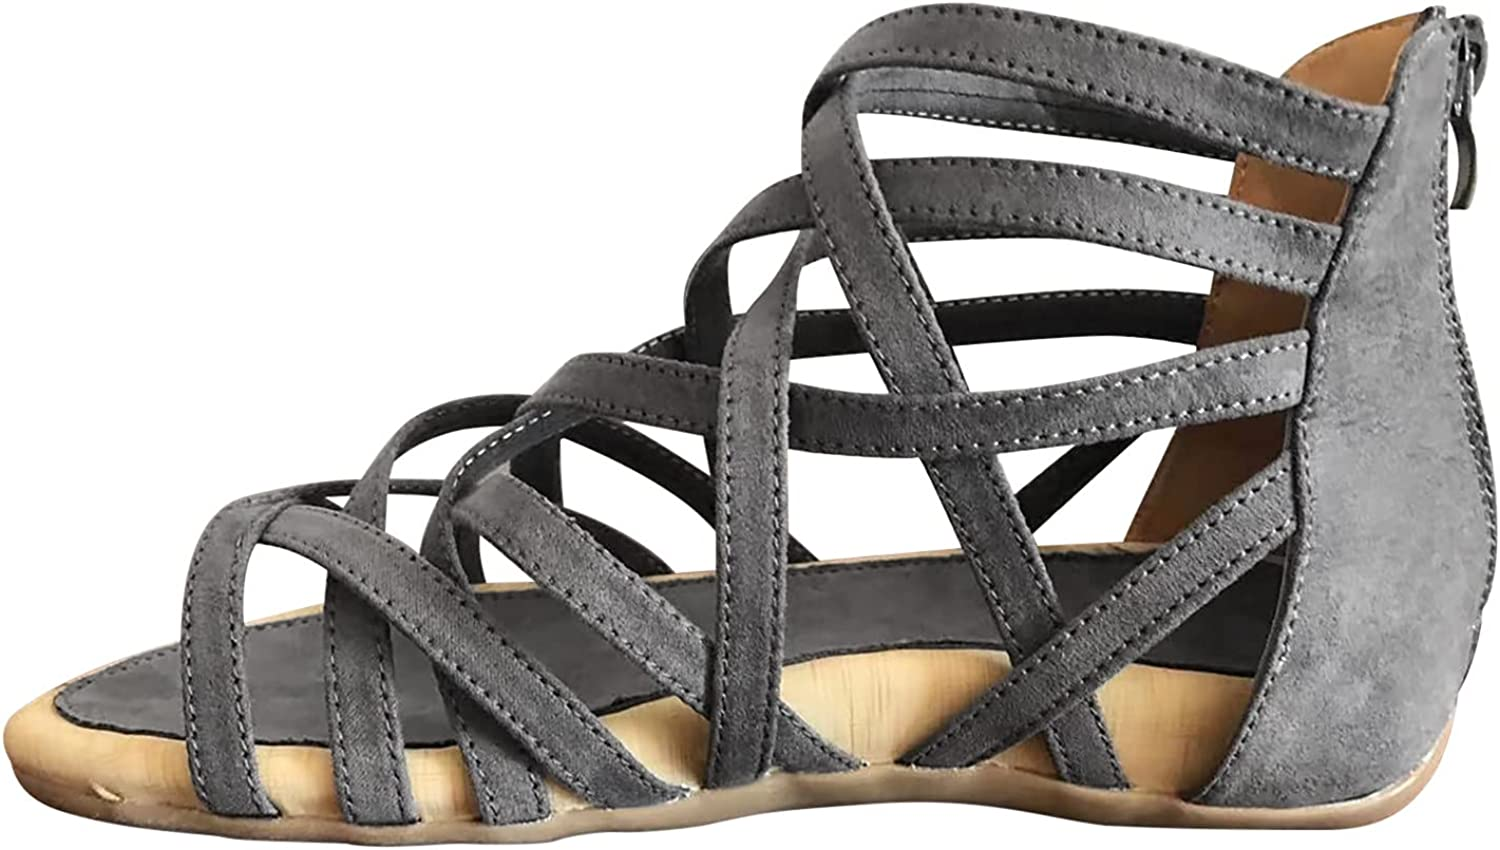 Beach Shoes for Women Sexy Beach Shoes for Women Sand Columbia Beach Shoes Beach Shoes for Women